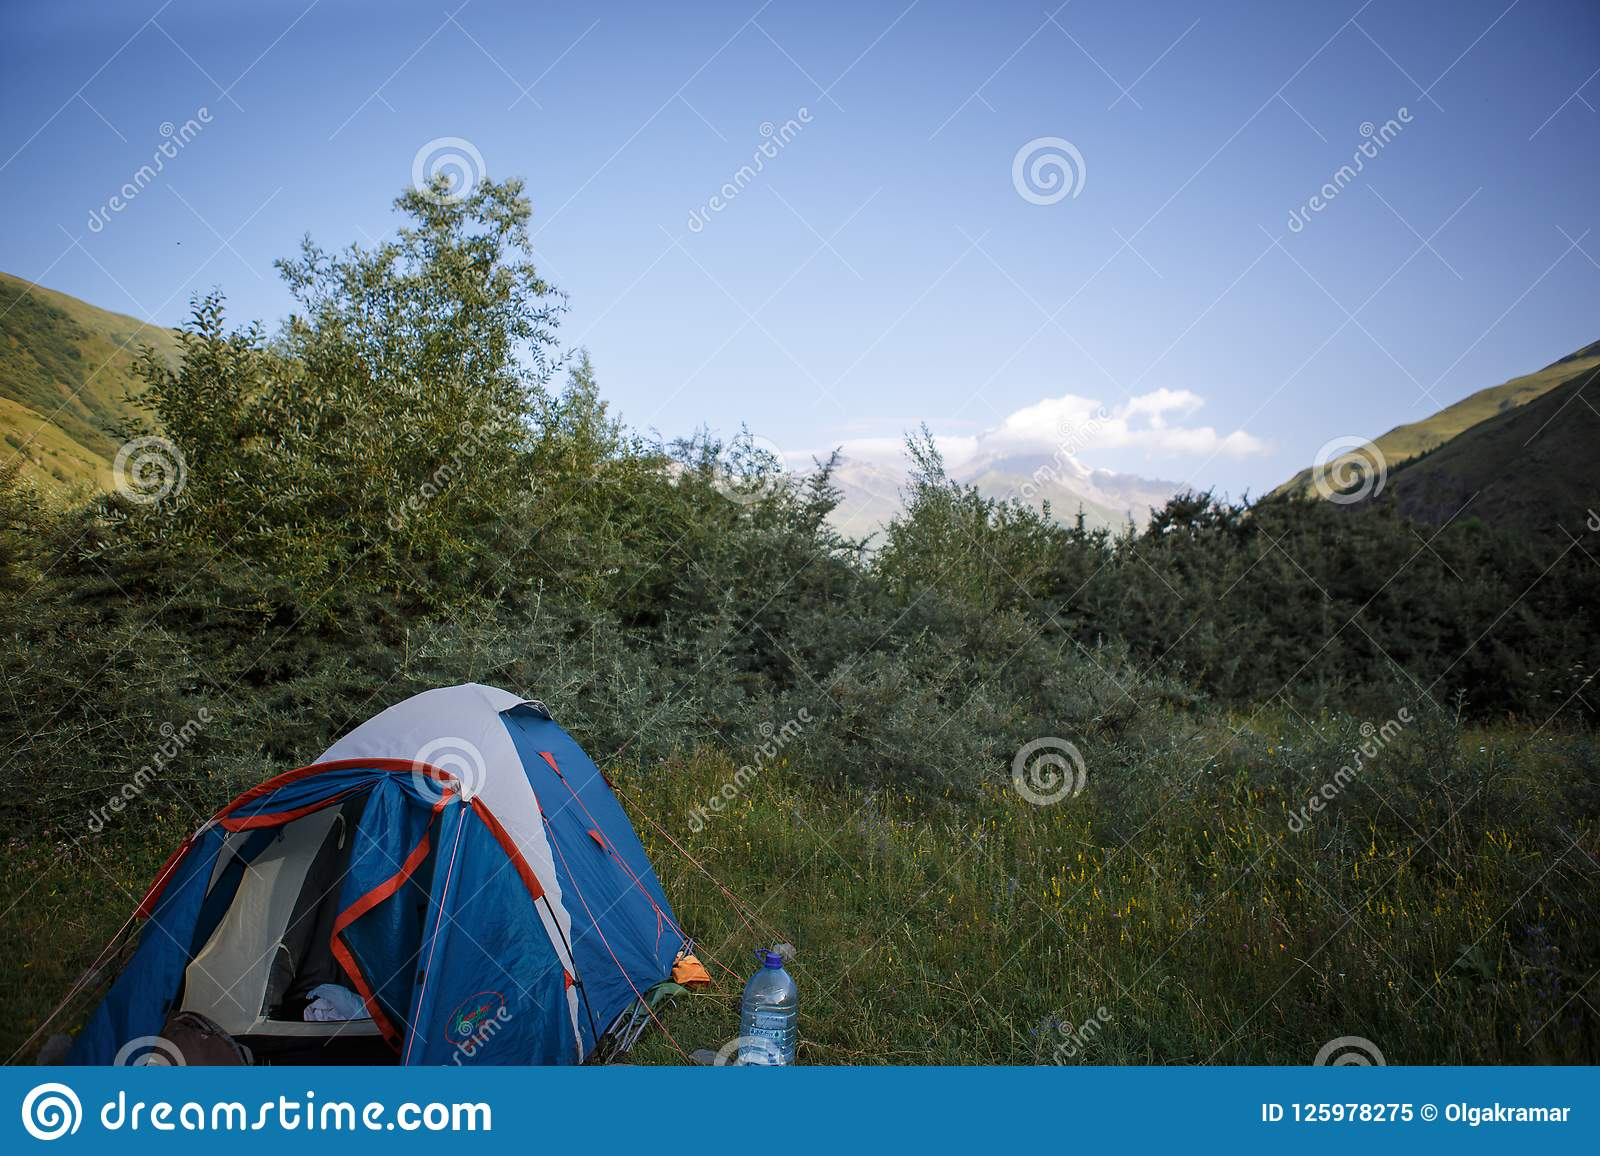 Camping in nature, in the mountains of Georgia, Borjomi in summer